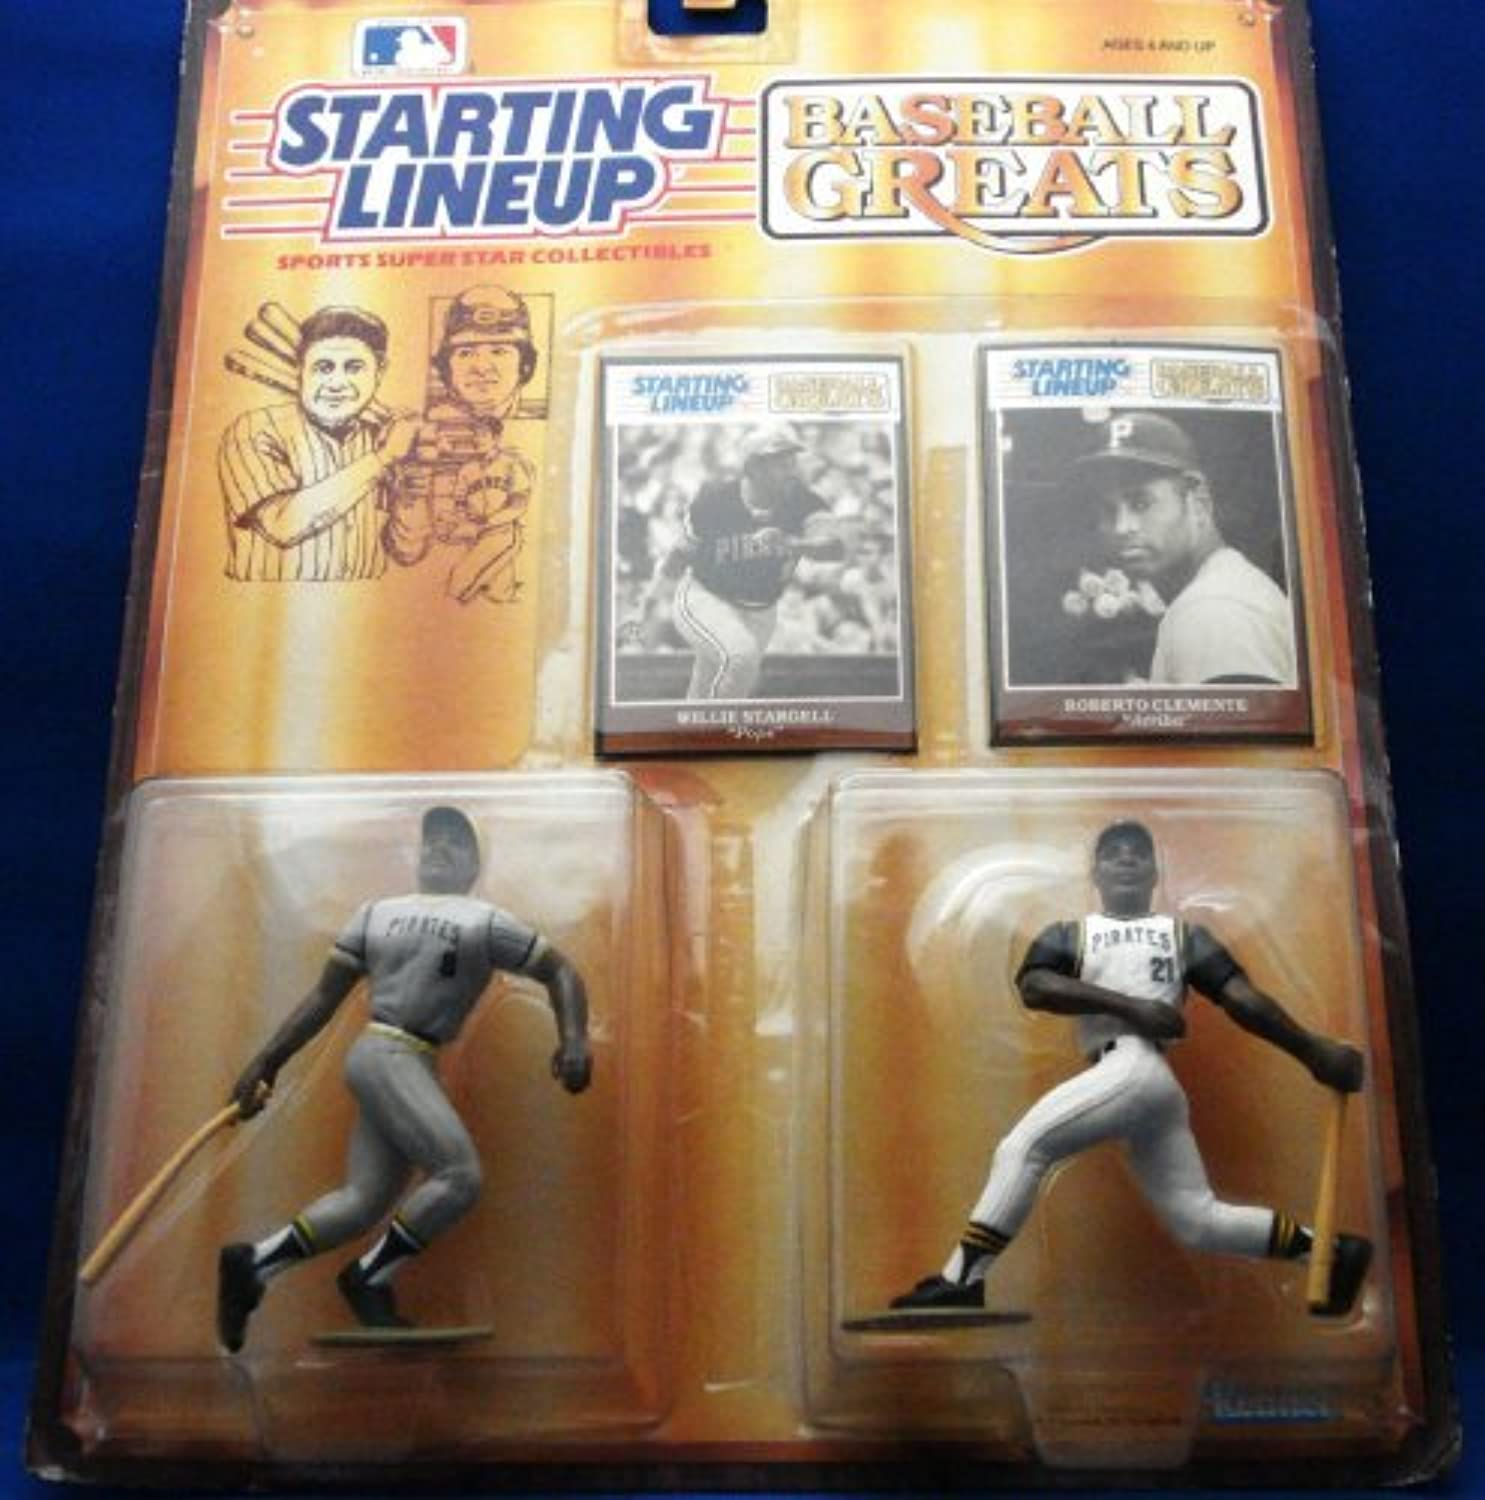 Starting Lineup Baseball Greats Willie Stargell and Roberto Clemente by Starting Line Up